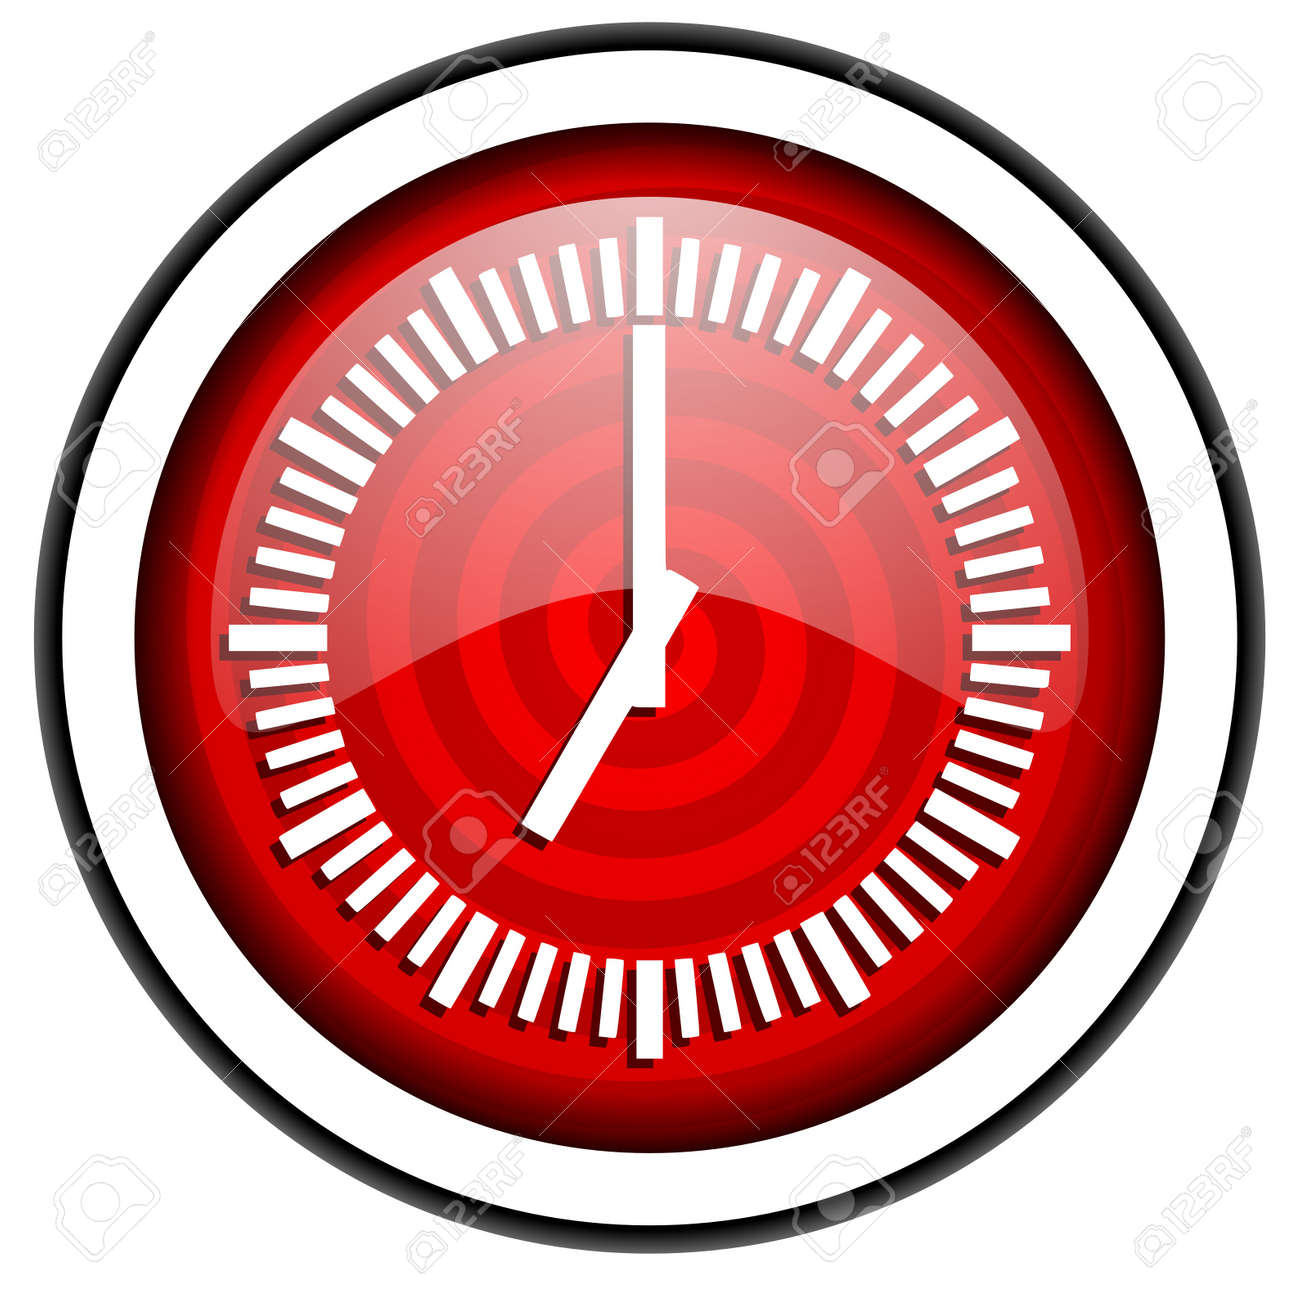 clock red glossy icon isolated on white background Stock Photo - 16975357